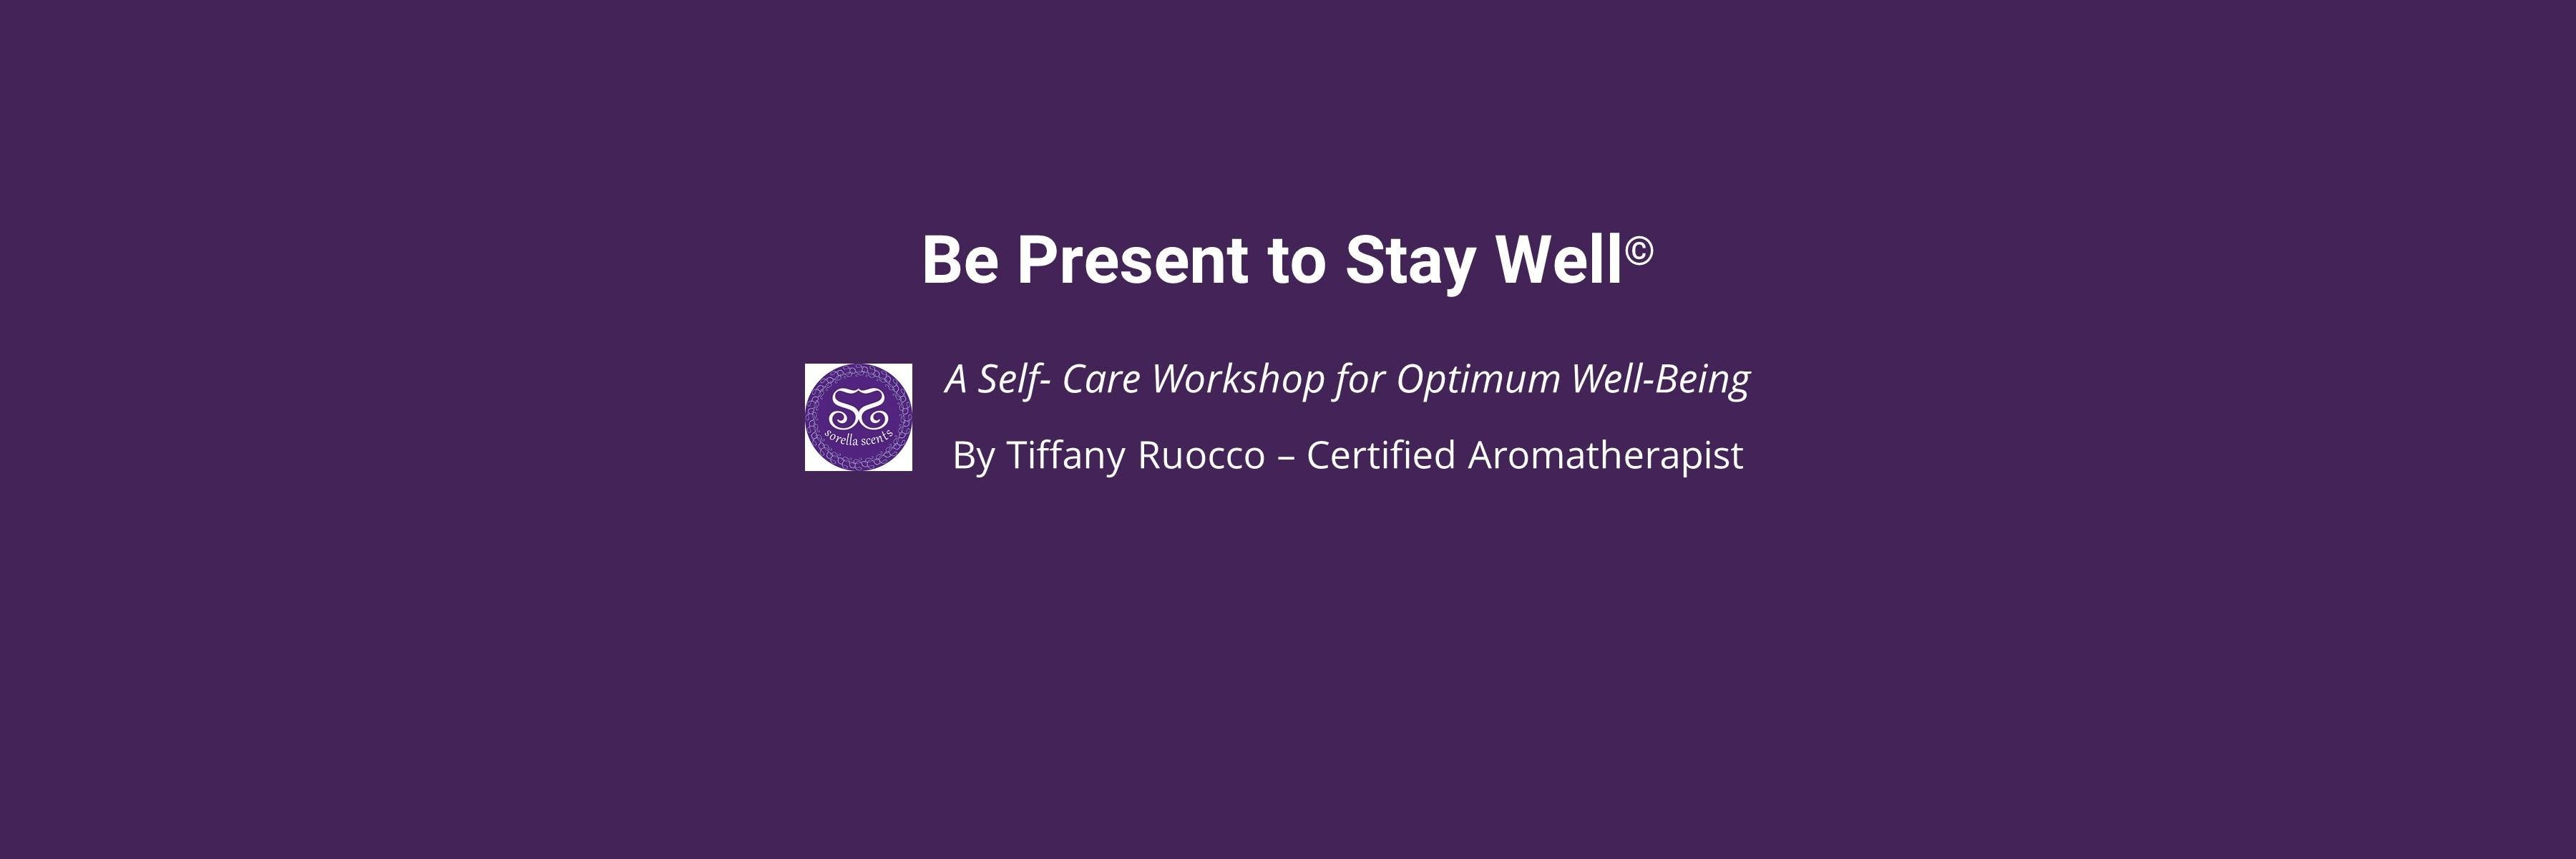 Be Present To Stay Well With Tiffany Ruocco Certified